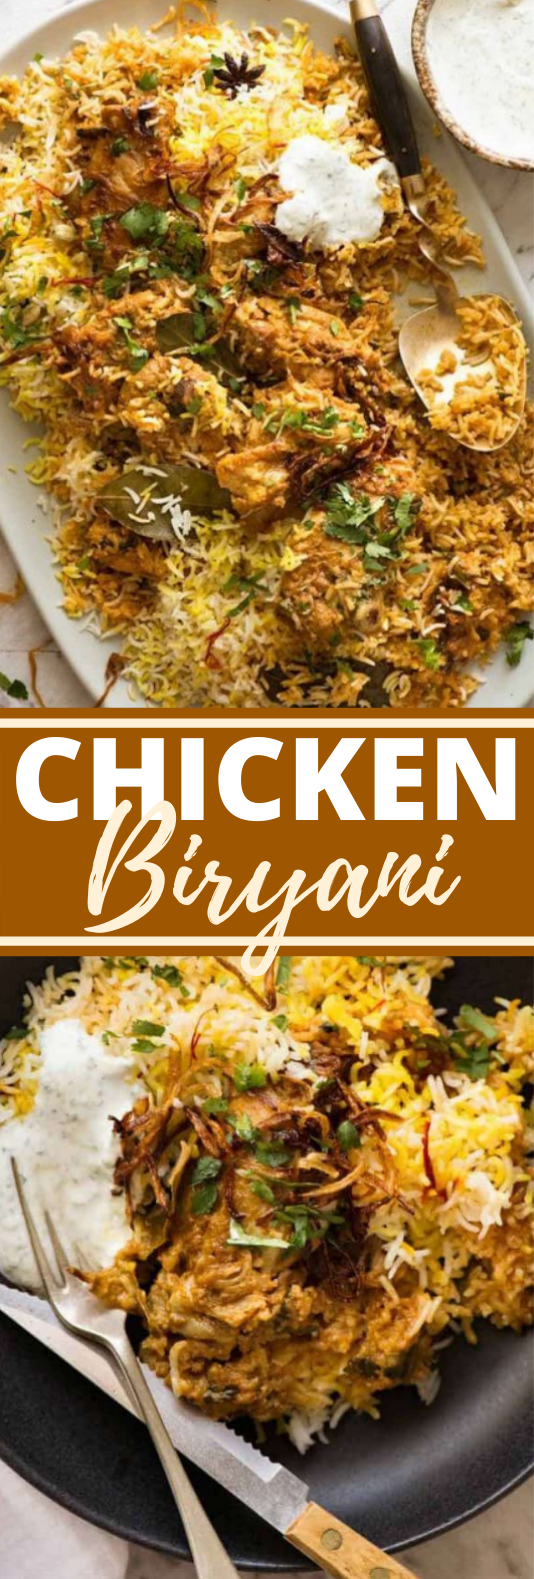 Chicken Biryani #dinner #recipes #asian #chicken #weeknight